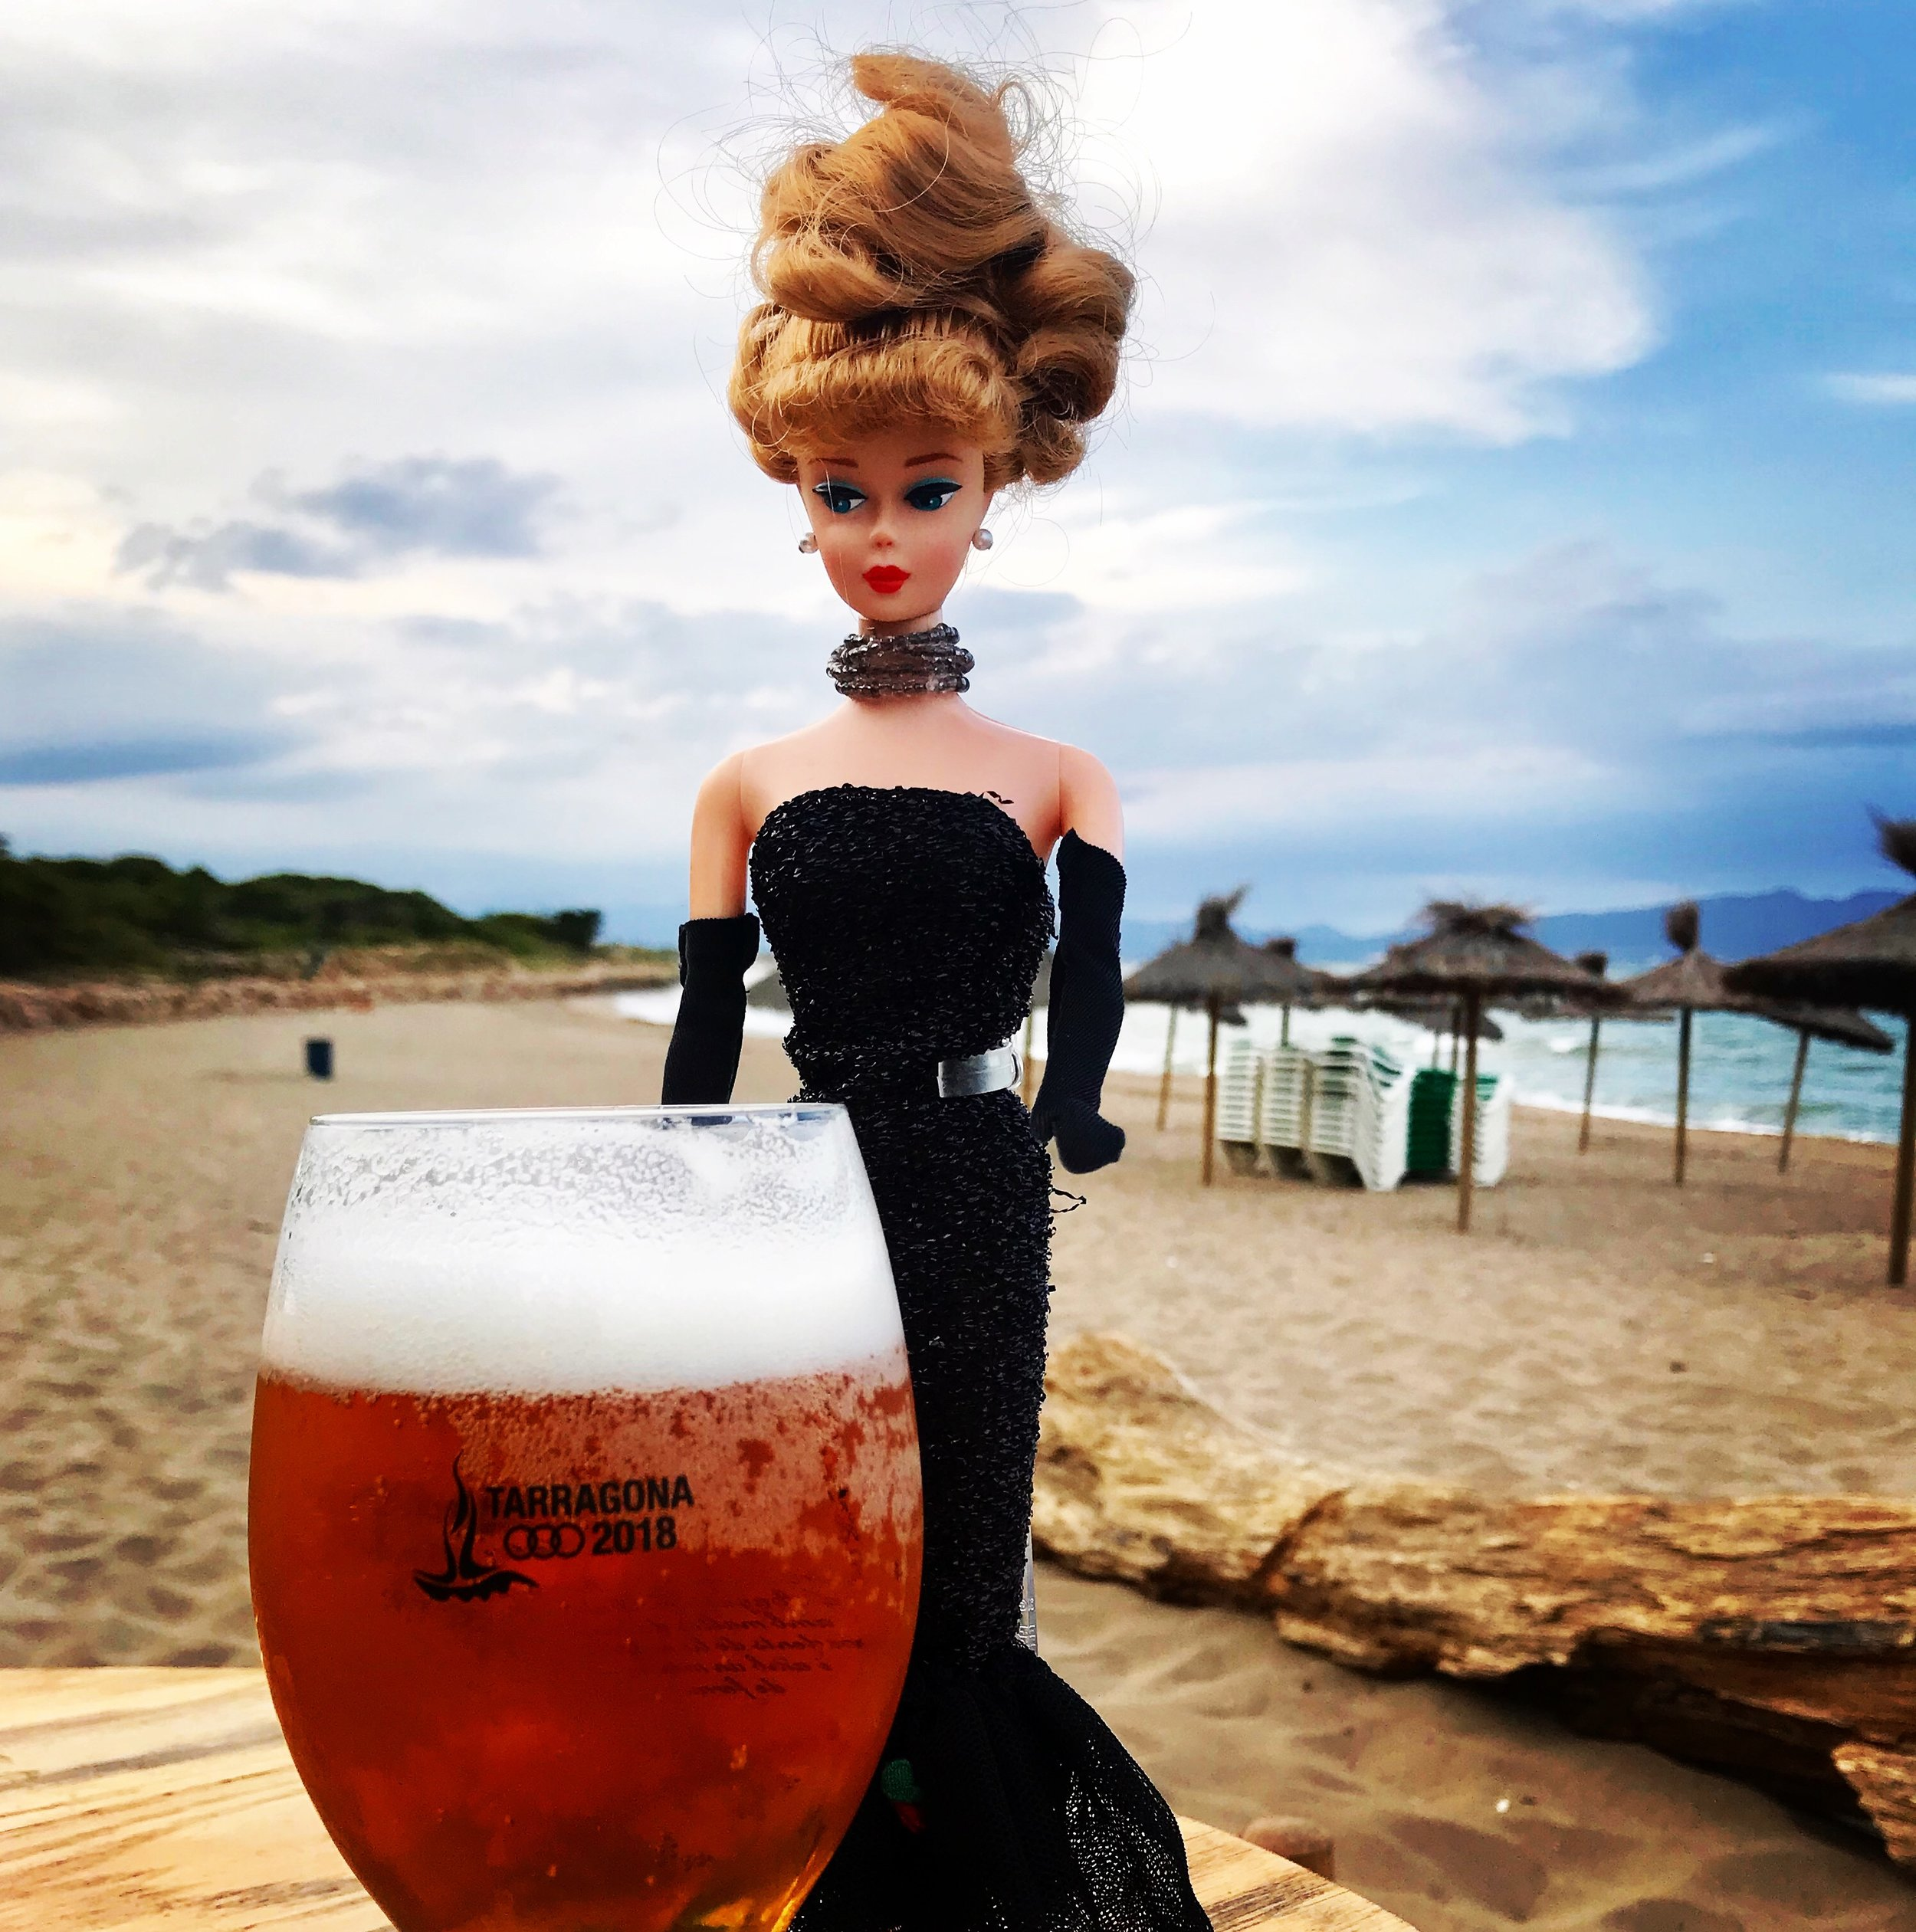 Barbie having a beer at the beach. It's the perfect way to end the day here.